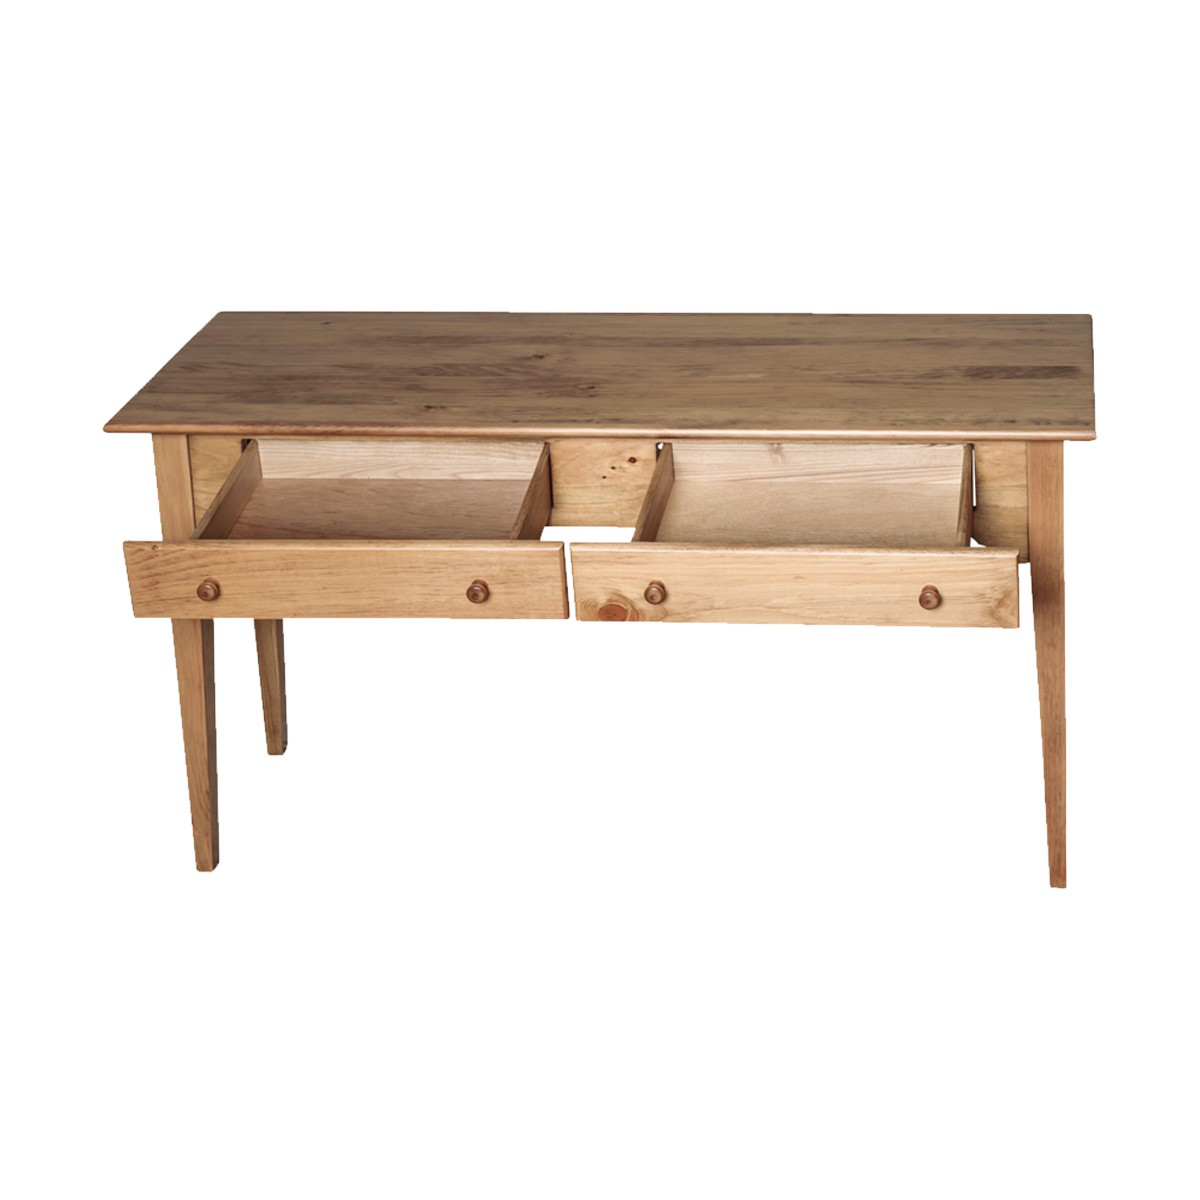 Sofa Table With Storage Honey Pine Enfield 27.5 x 52 Sofa Table With Storage Sofa Table Narrow Sofa Table Living Room